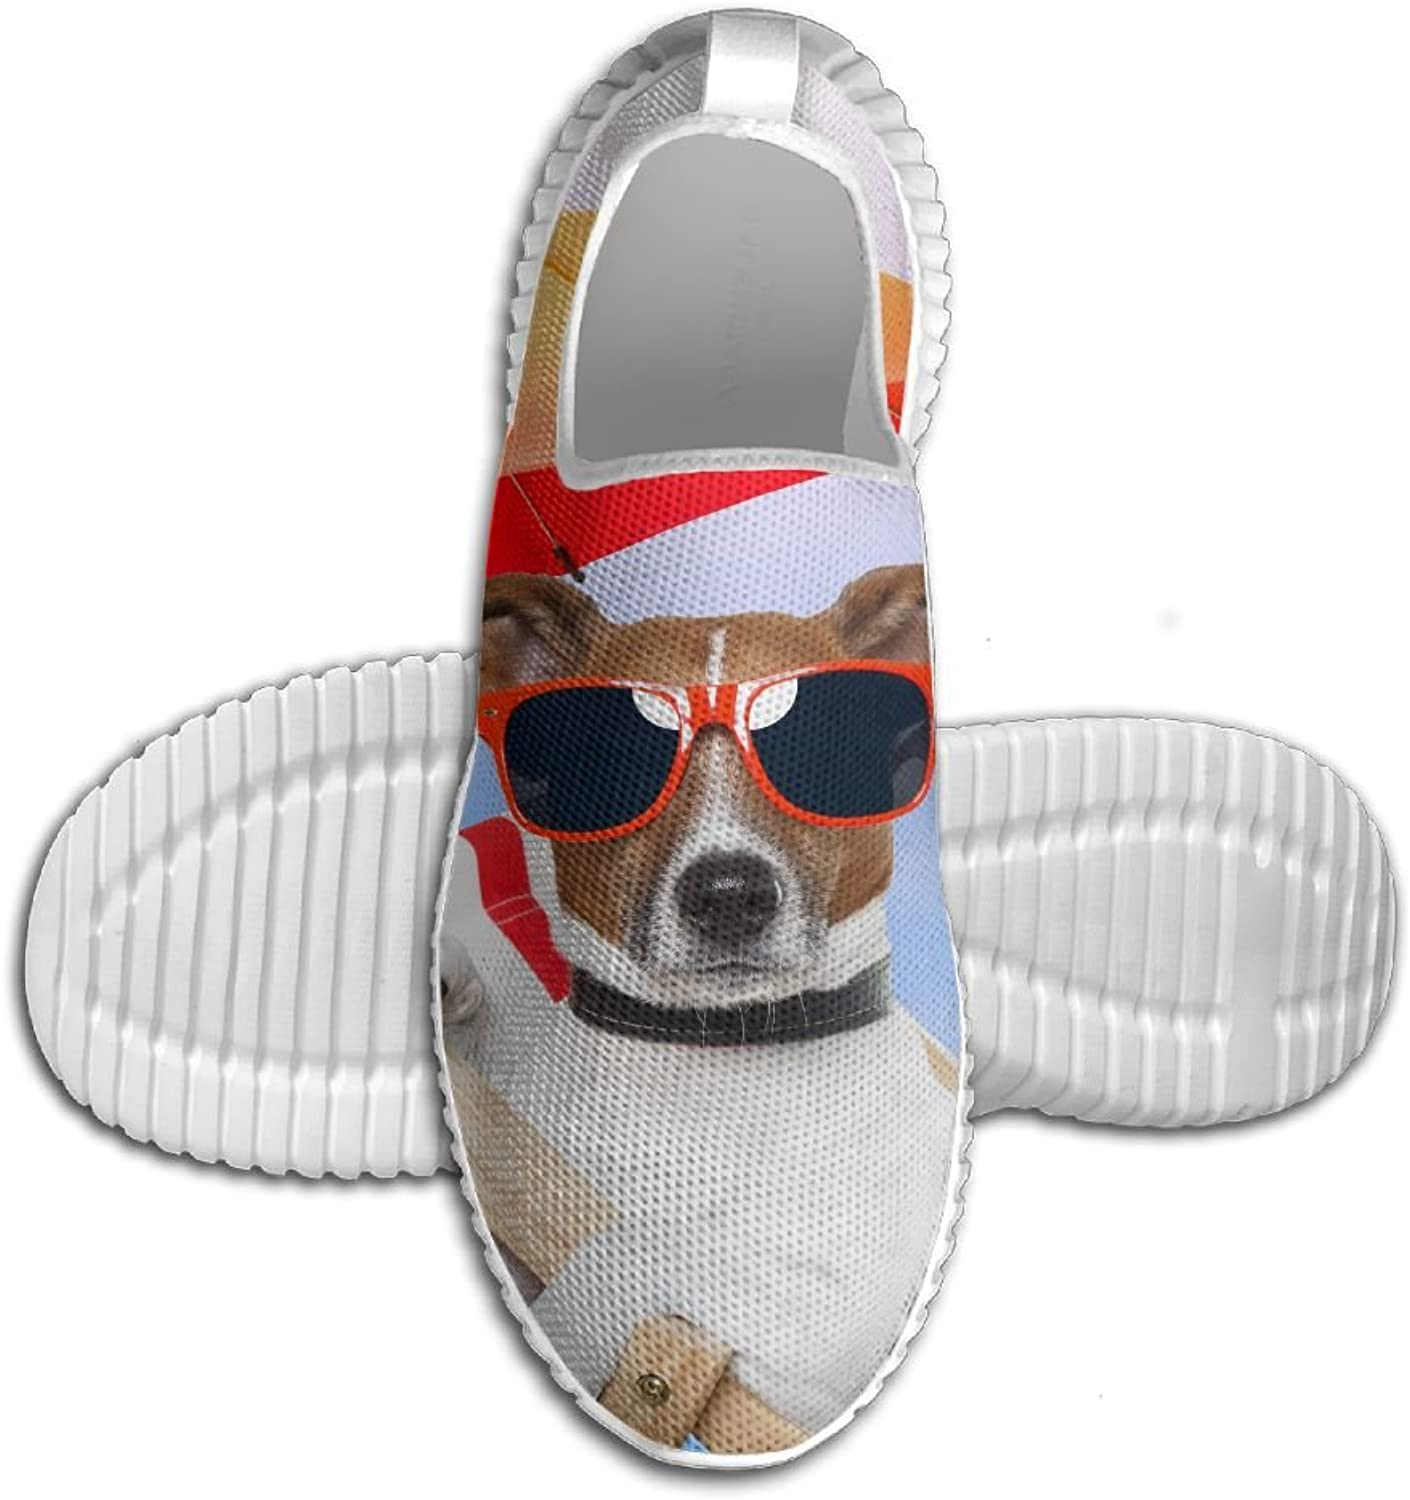 Unisex Adult Slip-On Mesh EVA Loafers Breathable 3D Printed Fly Knit Sneaker Soft Slippers shoes